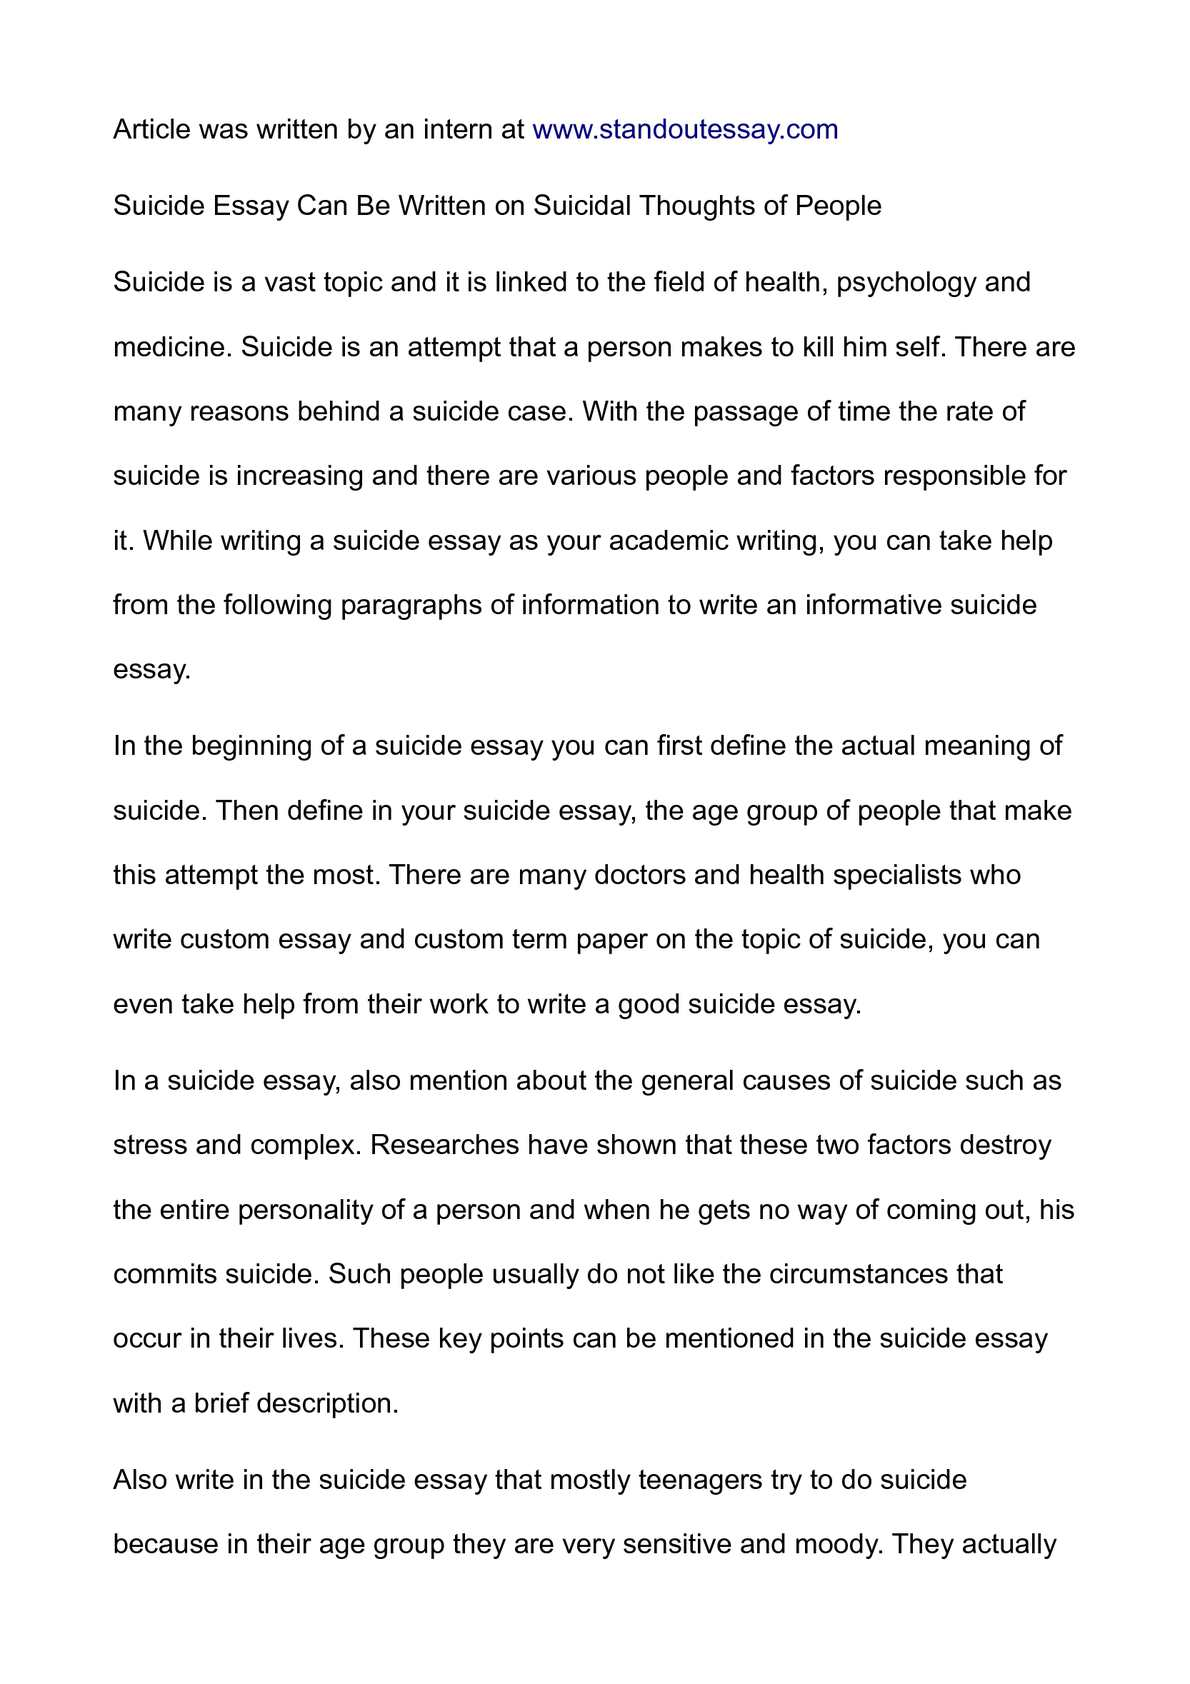 suicide essay can be written on suicidal thoughts of people